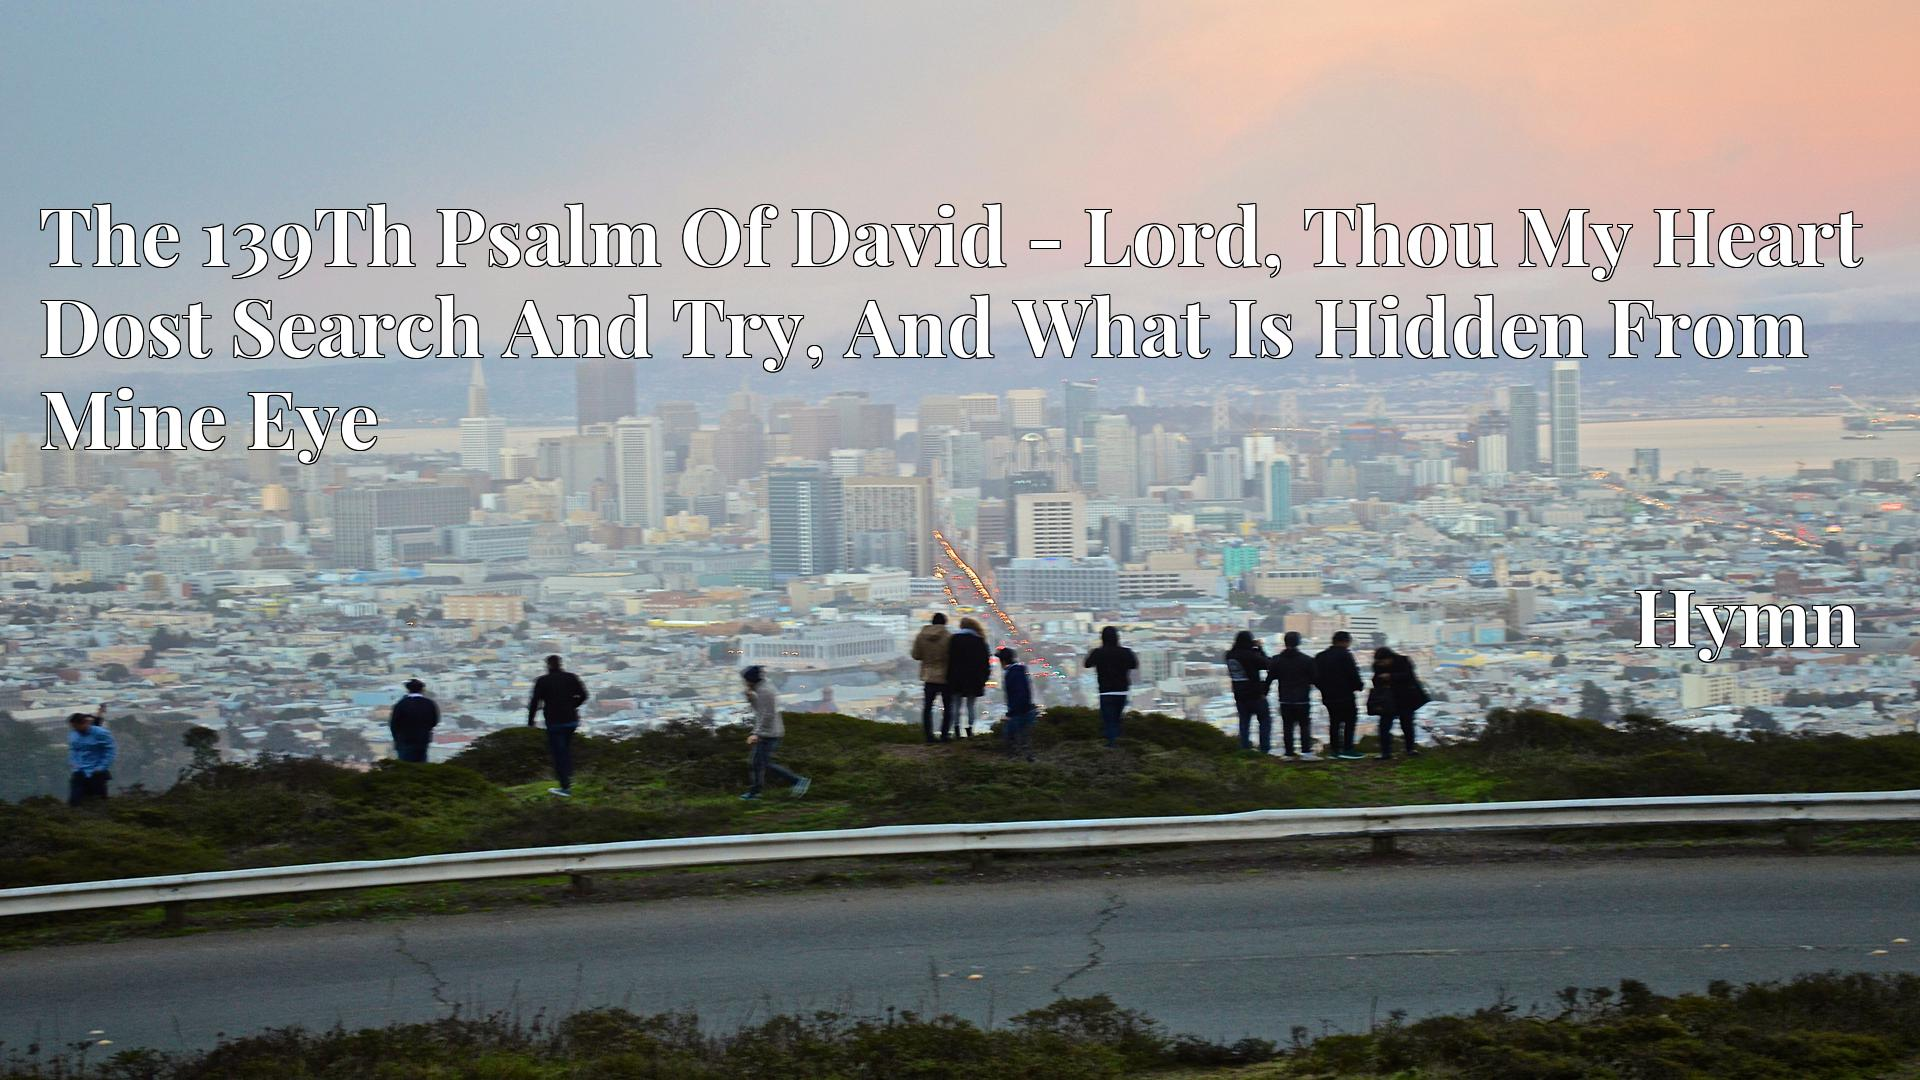 The 139Th Psalm Of David - Lord, Thou My Heart Dost Search And Try, And What Is Hidden From Mine Eye - Hymn